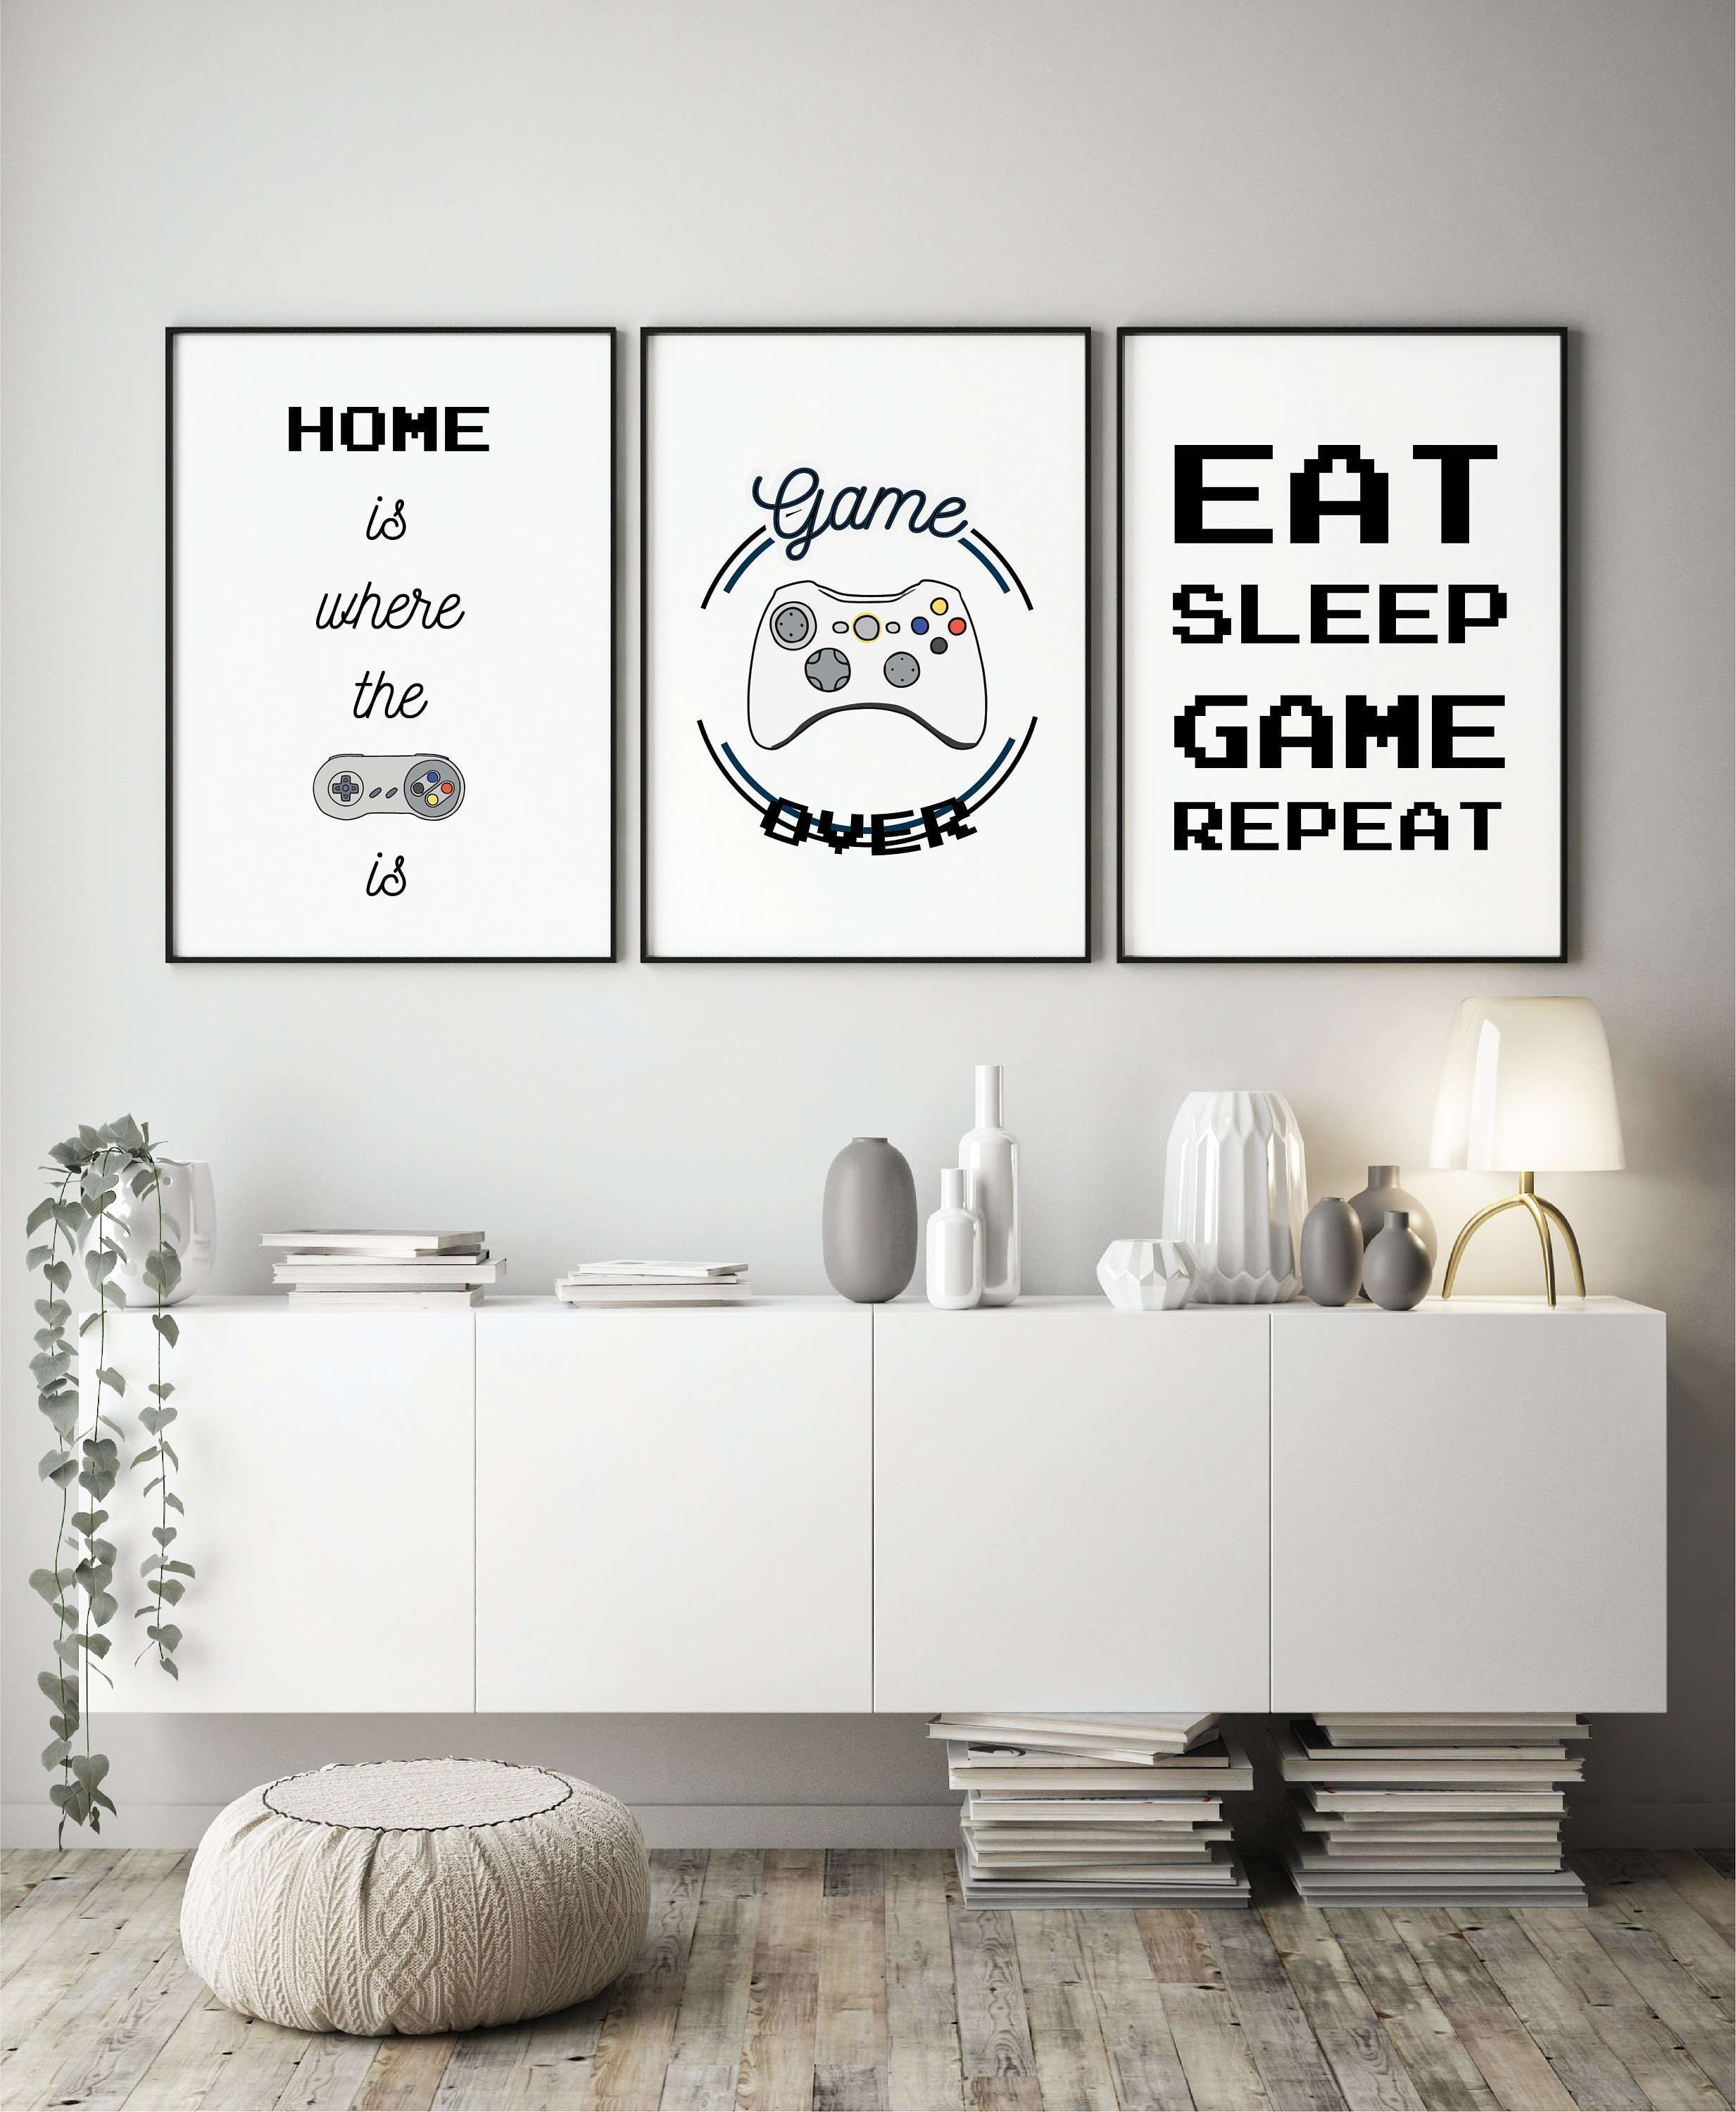 Gaming Room Wall Art Inspiration Camaxid Com Gamer Room Decor Game Room Decor Gamer Room